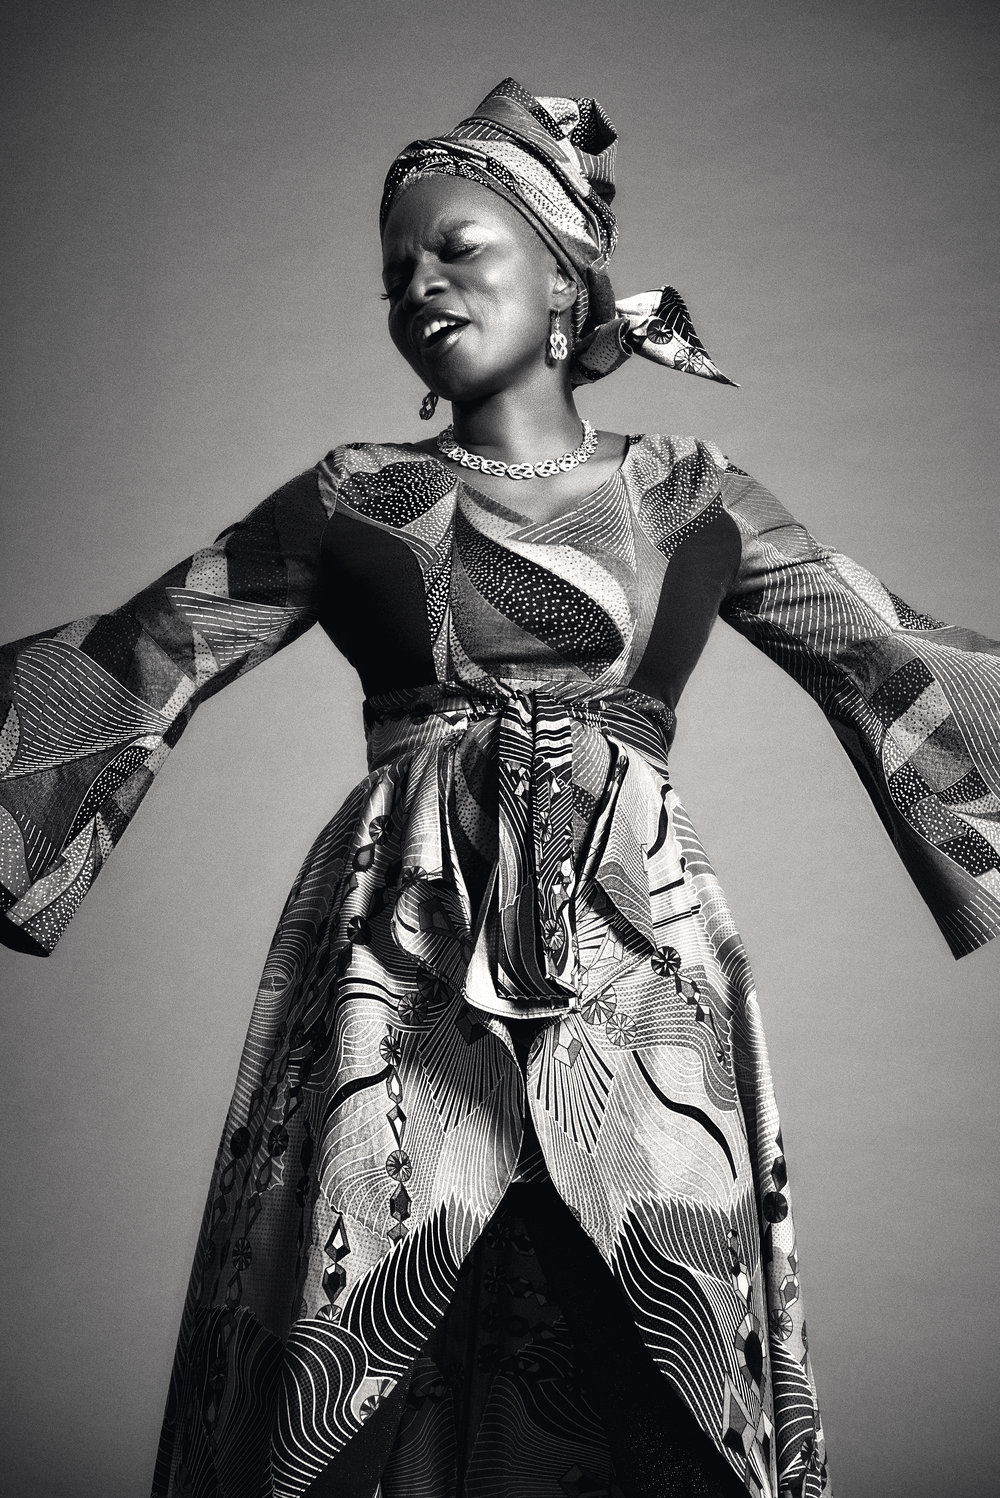 Angelique Kidjo 4 2017 Credit Sofia_And_Mauro.jpg